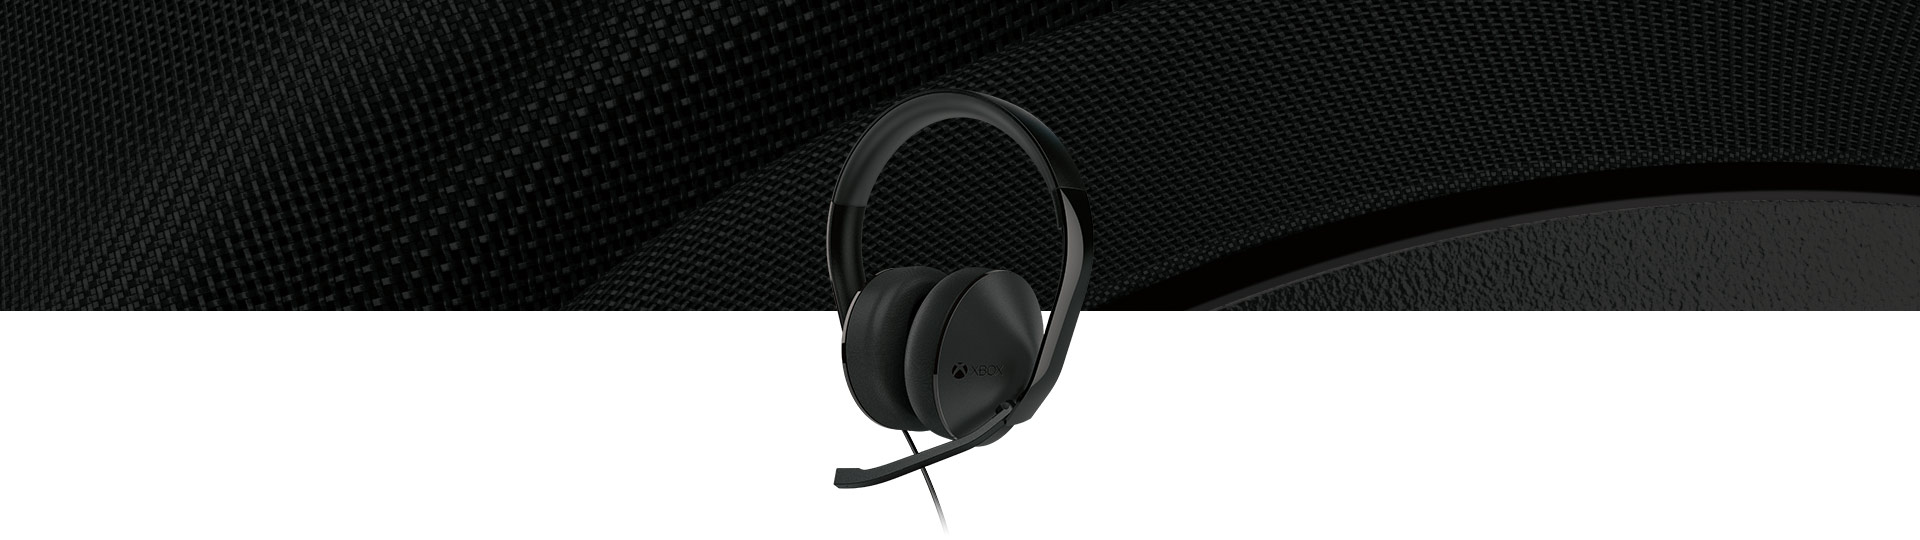 Stereo-Headset